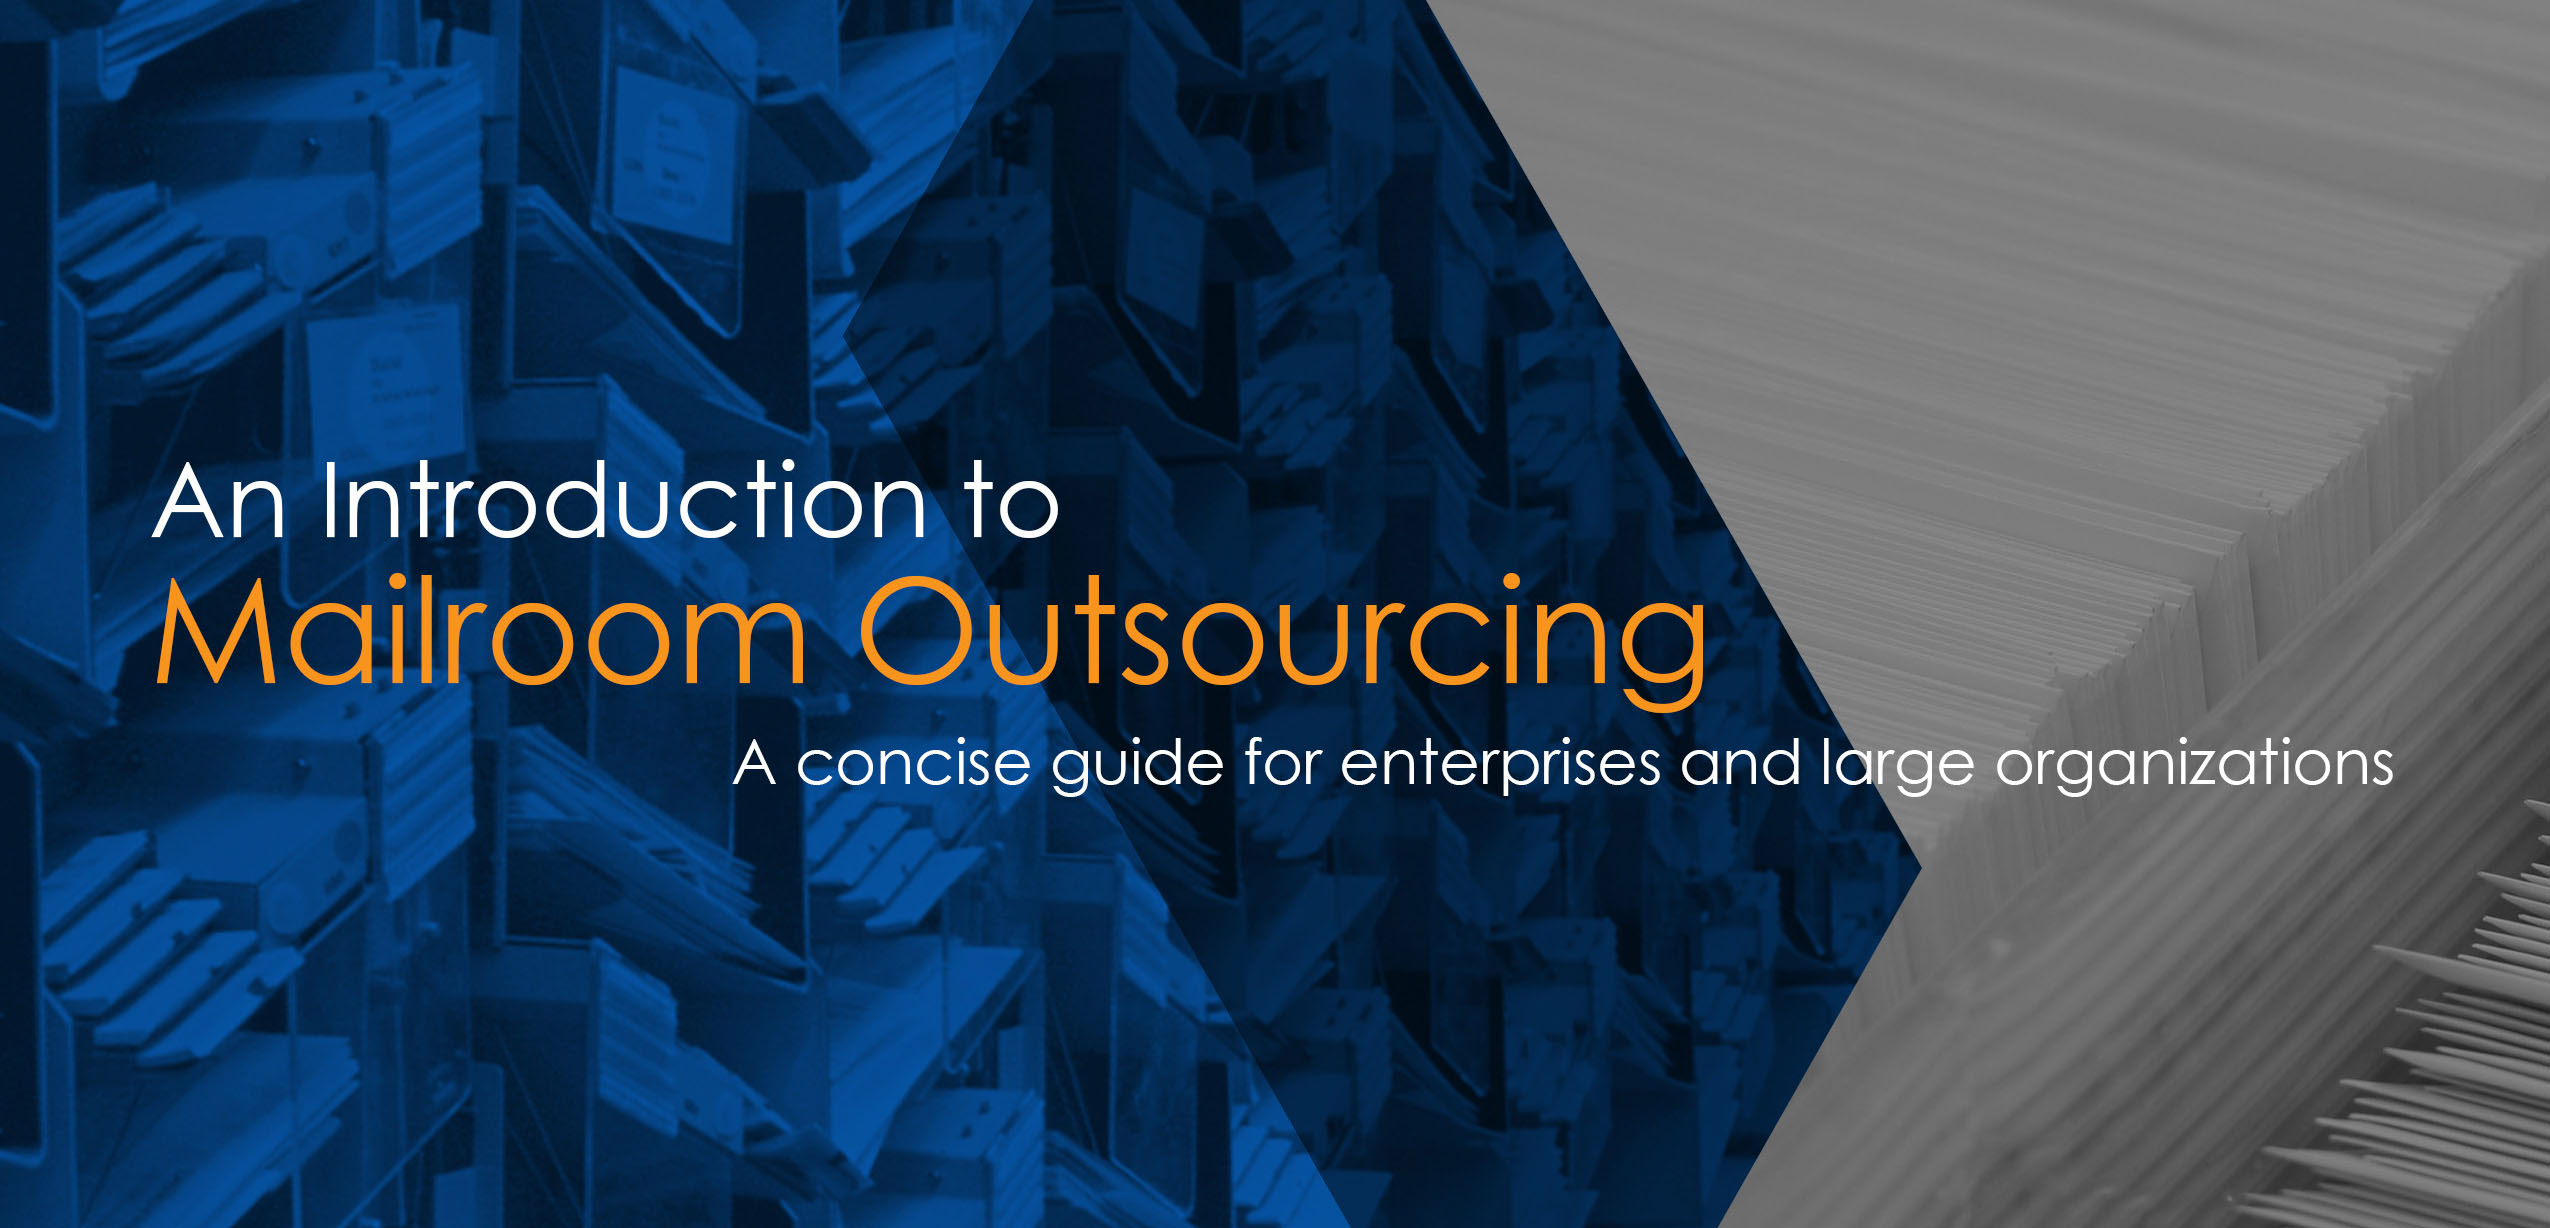 An Introduction to Mailroom Outsourcing